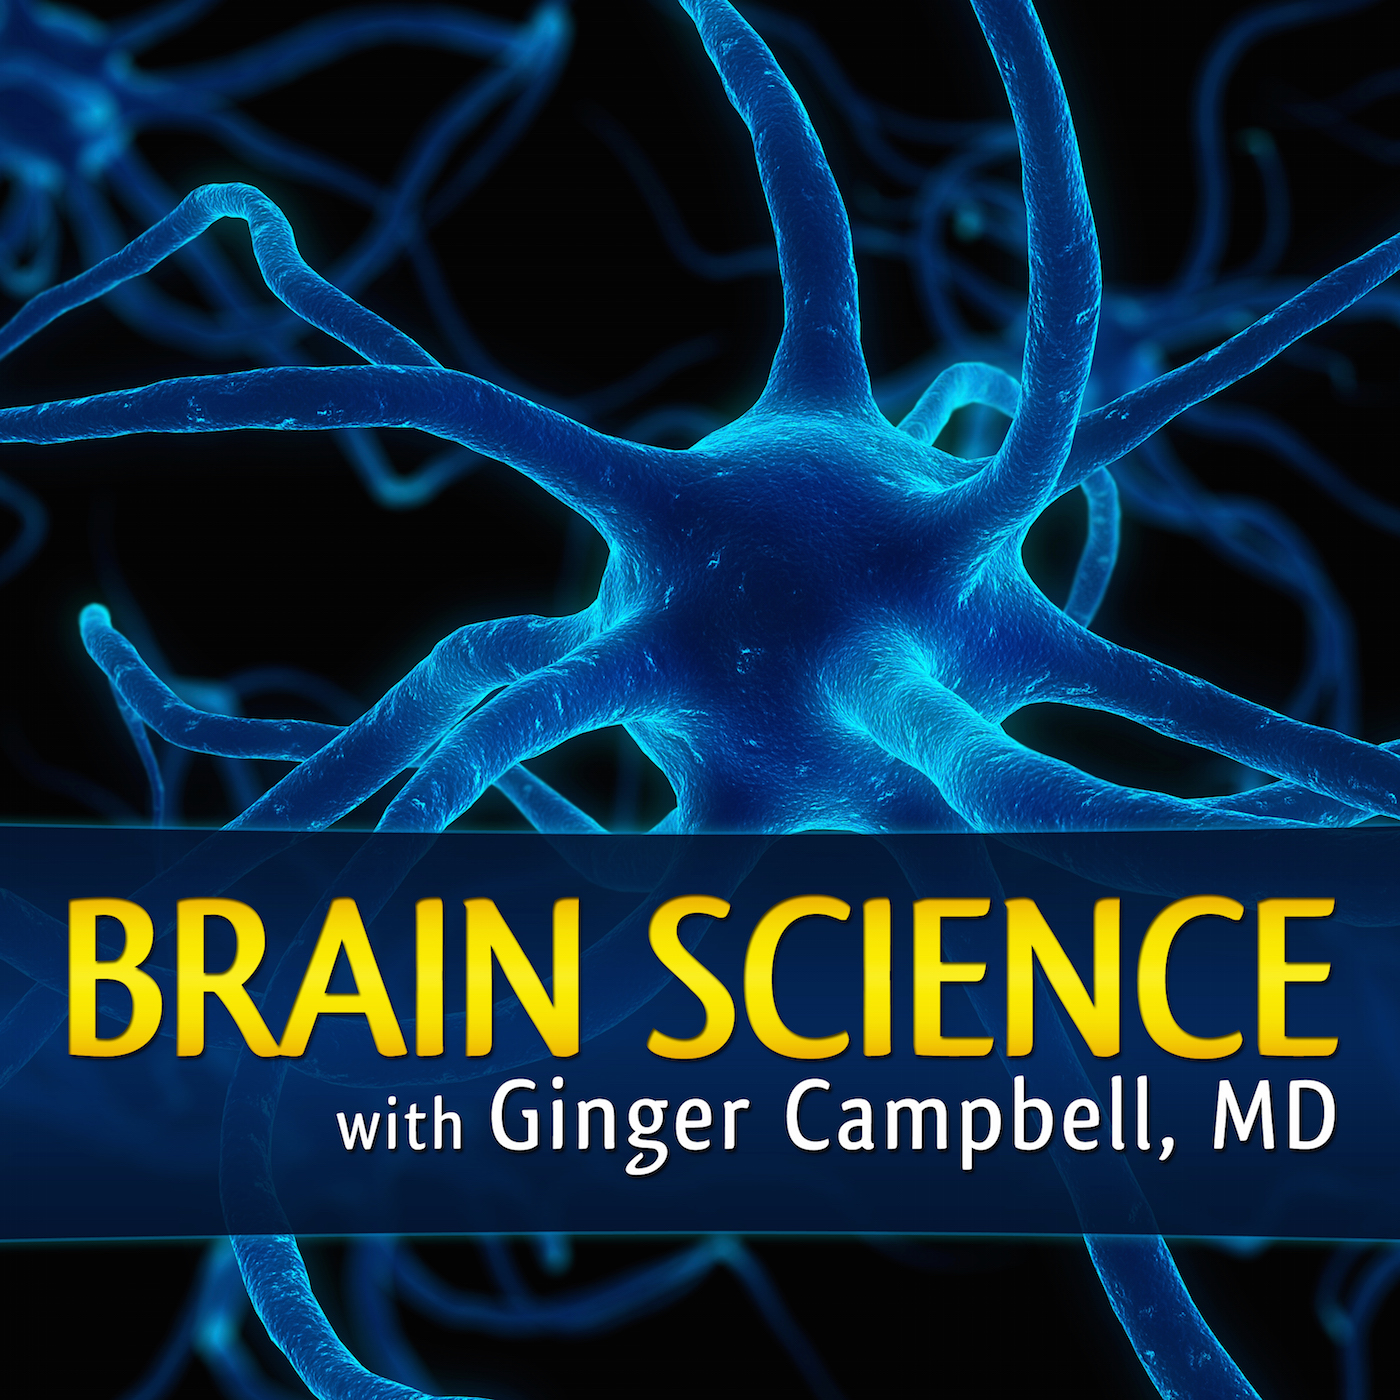 Brain Science with Ginger Campbell, MD: Neuroscience for Everyone show art